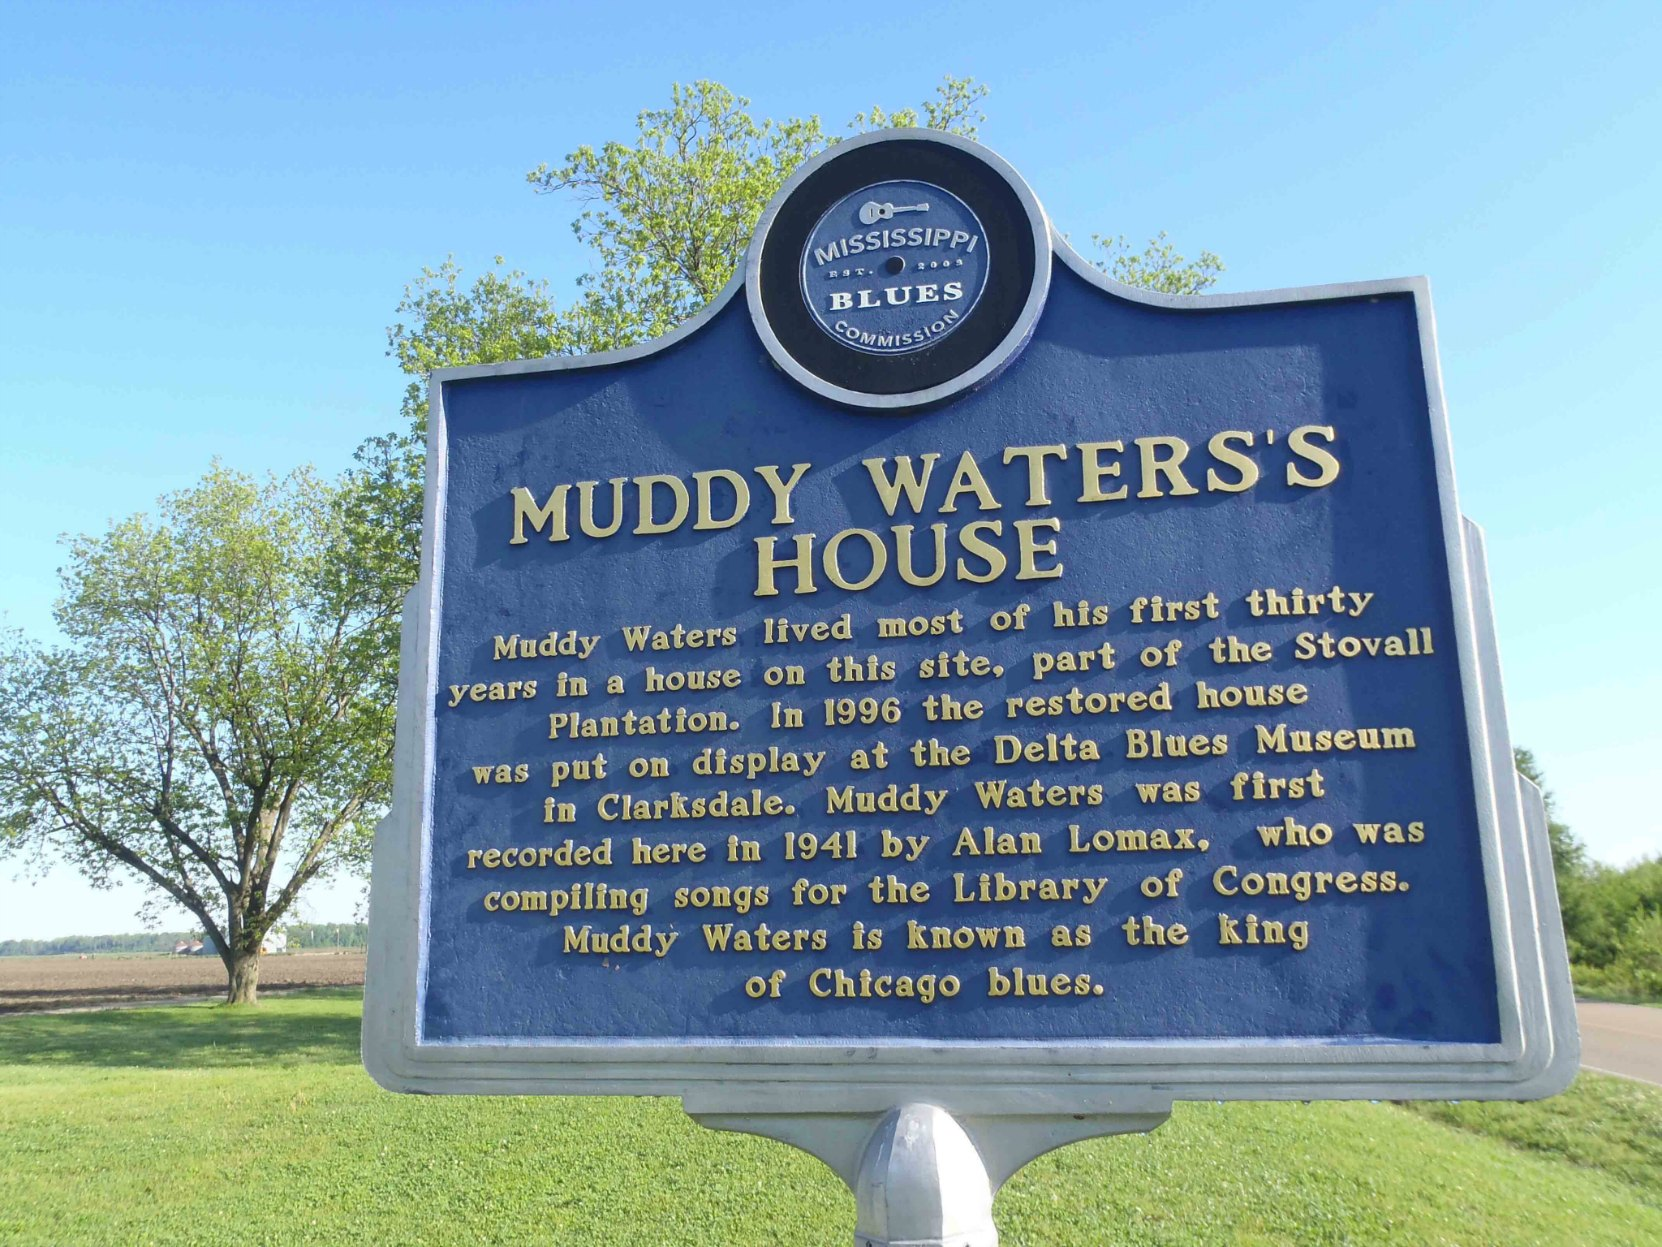 The Mississippi Blues Trail marker at the Muddy Waters House site, Stovall Farms, outside Clarksdale, Mississippi.